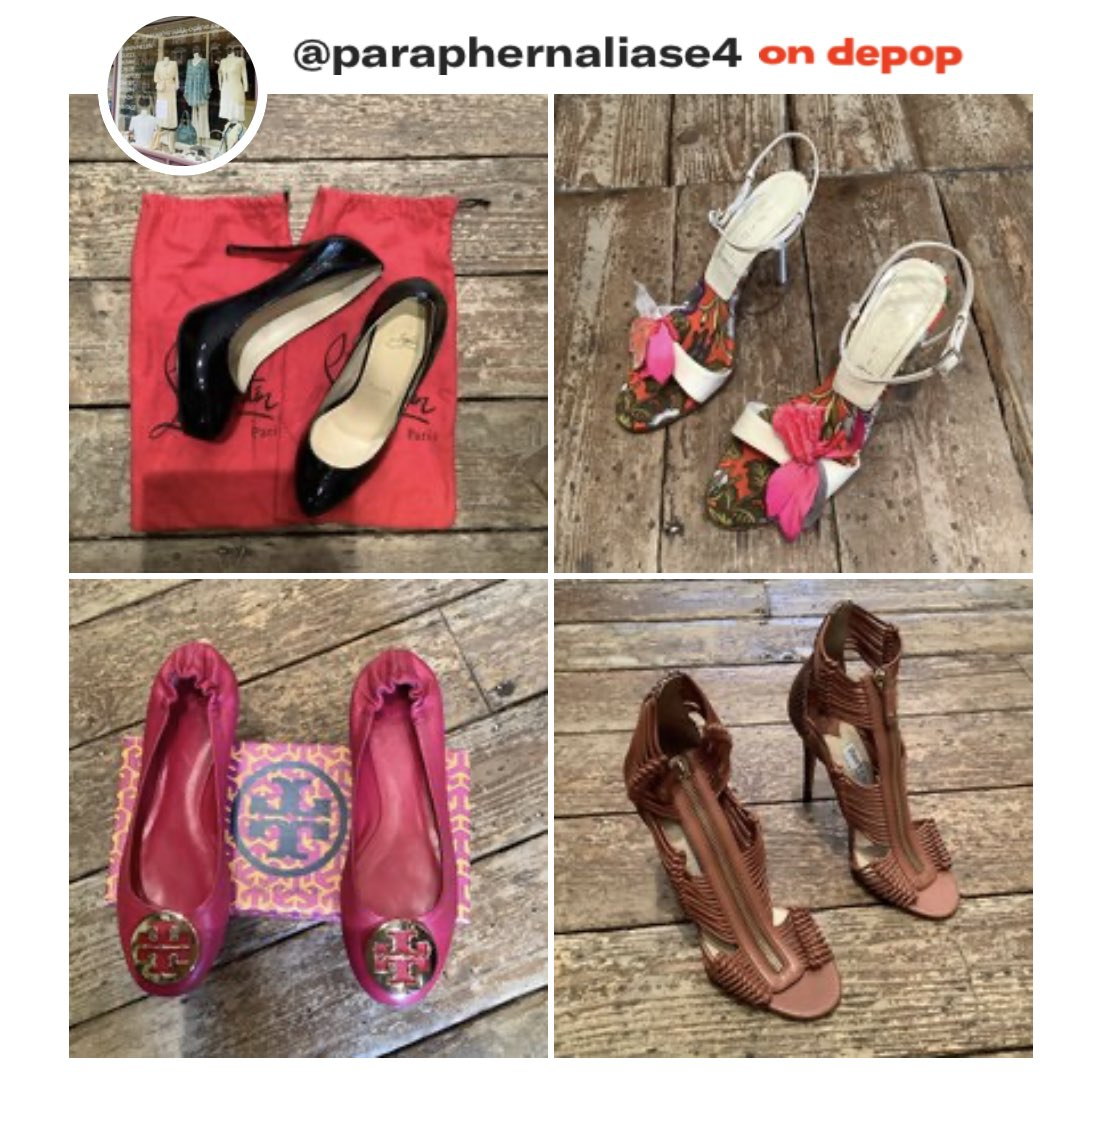 New #designer shoes and boots added onto our website today (link in bio) and #Depop @paraphernaliase4  #shoponline #shopdepop #fashion #shopping #vintage #samples #jimmychoo #burberry #toryburch #christianlouboutin #tommyhilfiger #armanipic.twitter.com/RyAEffYkhA